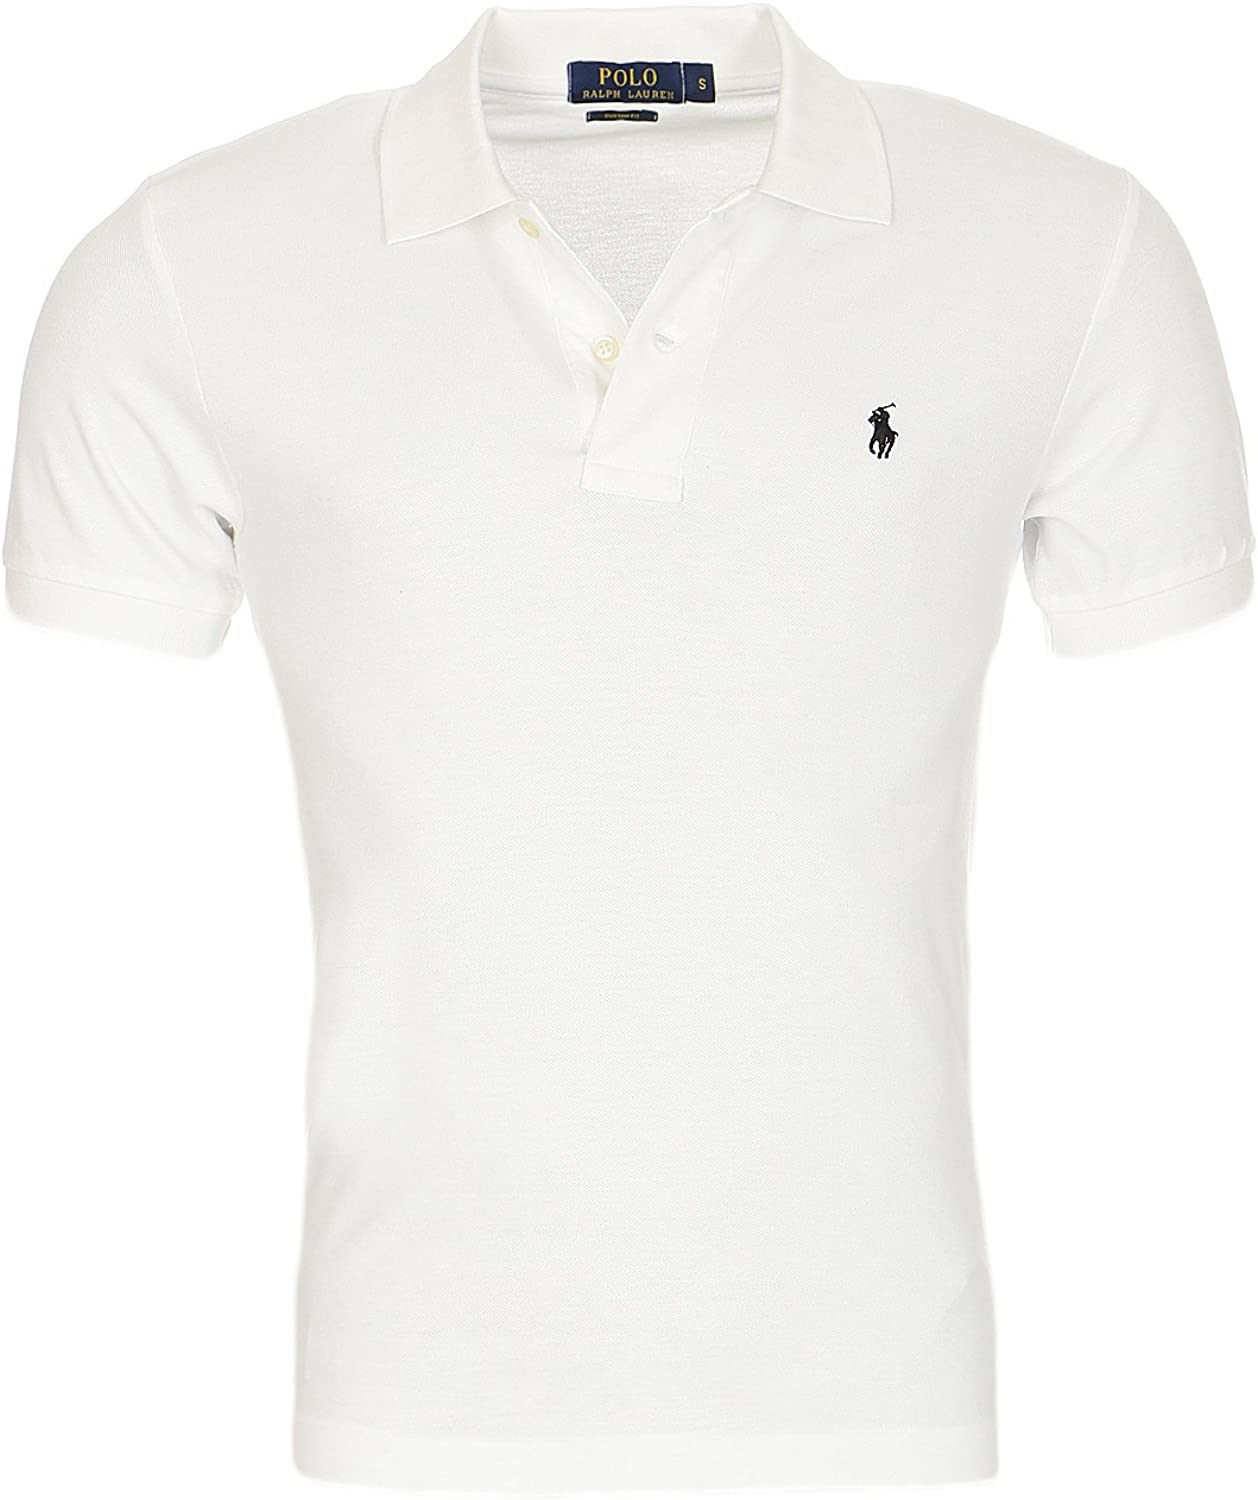 Ralph Lauren Polo Homme Petit Poney Custom